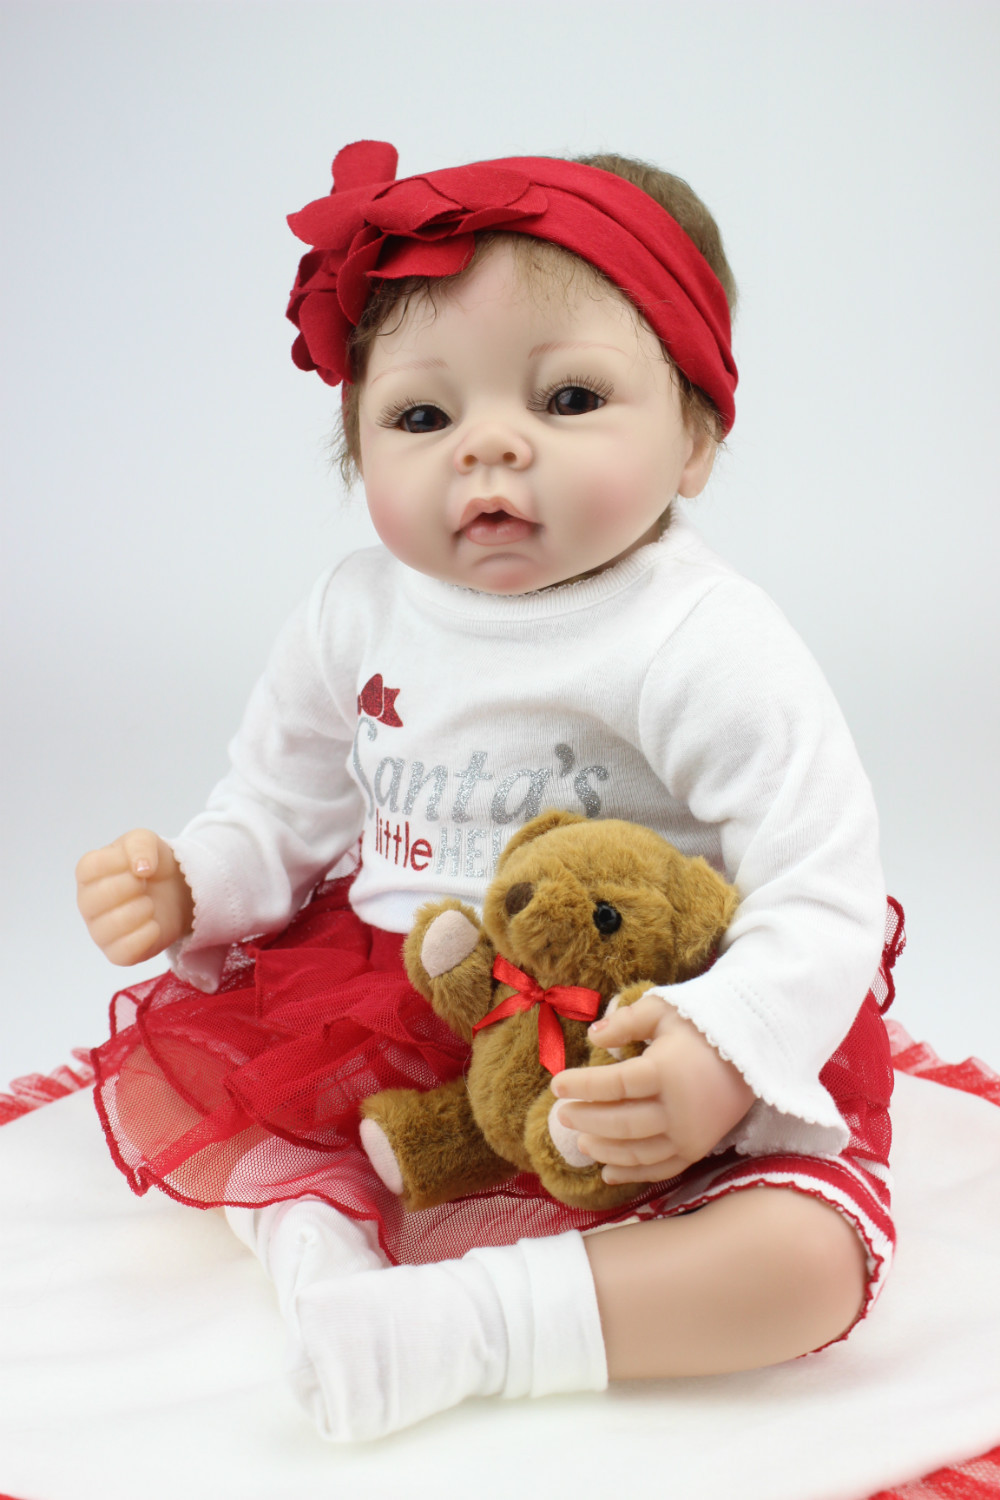 wholesale reborn baby doll popular hot selling dolls lifelike soft silicone real gentle touch toys gifts for children short curl hair lifelike reborn toddler dolls with 20inch baby doll clothes hot welcome lifelike baby dolls for children as gift